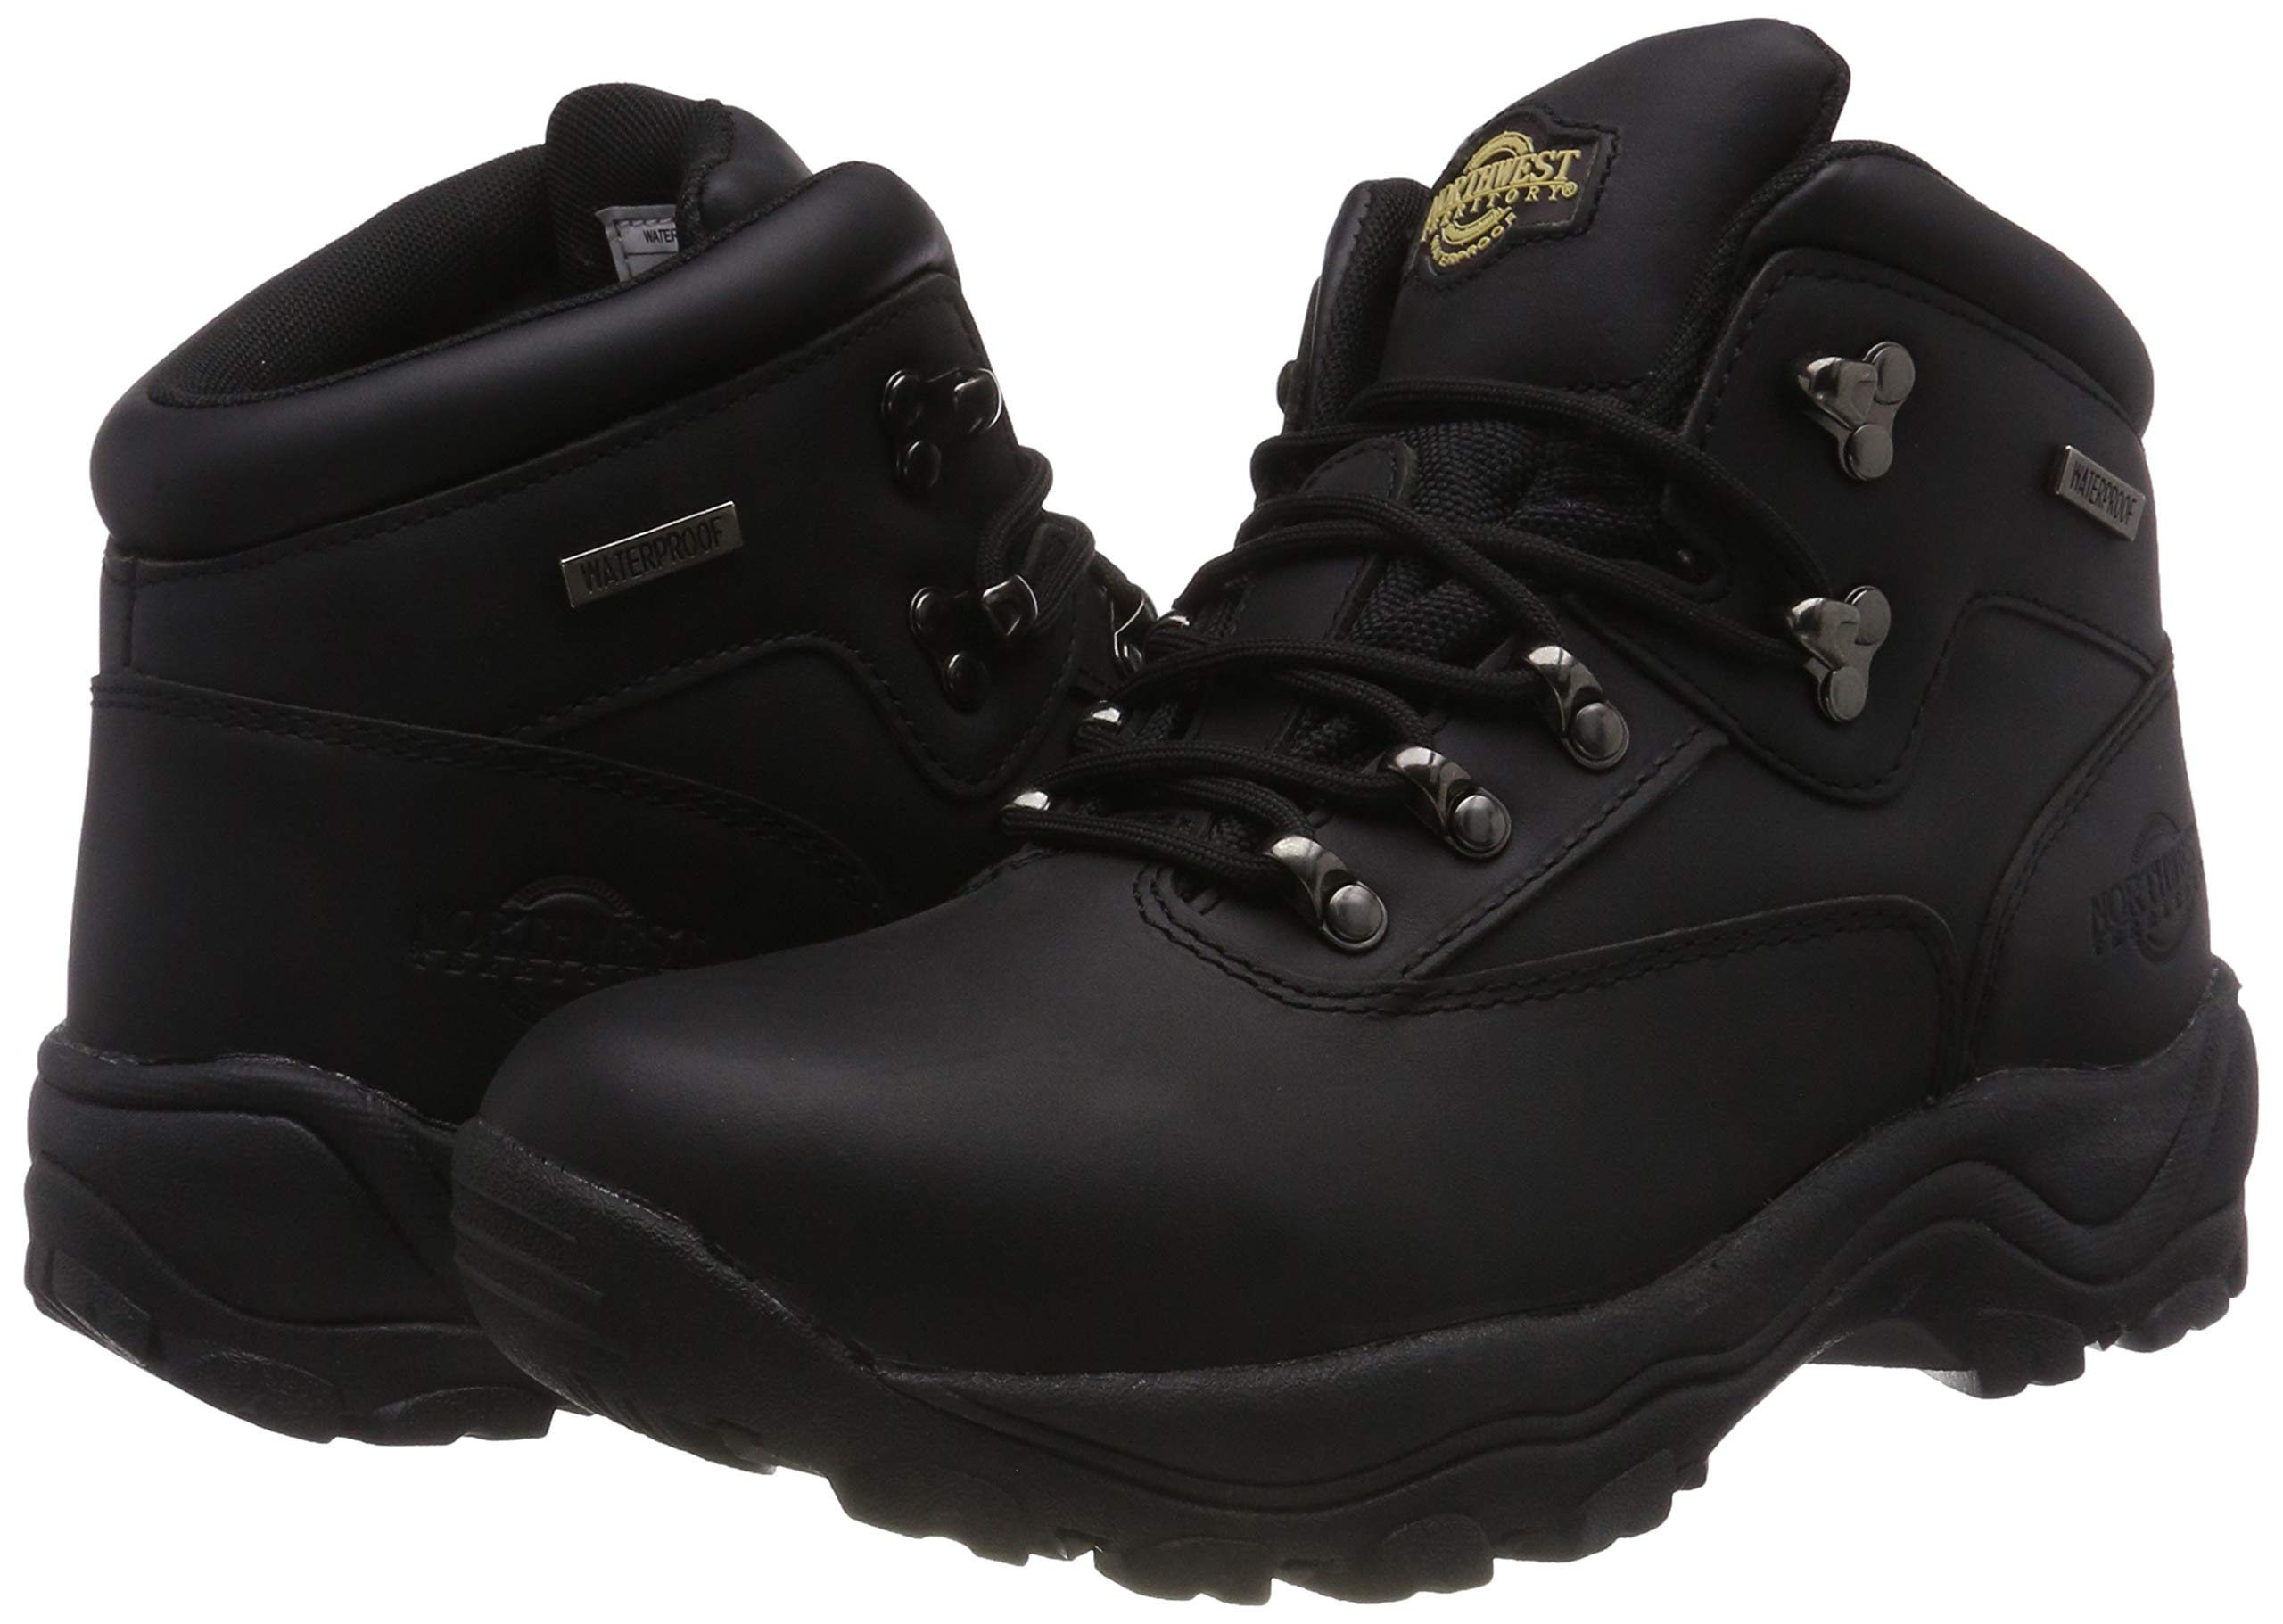 Northwest Men Hiking Walking Trail Boots Leather Waterproof Ankle High Rise Shoe 5